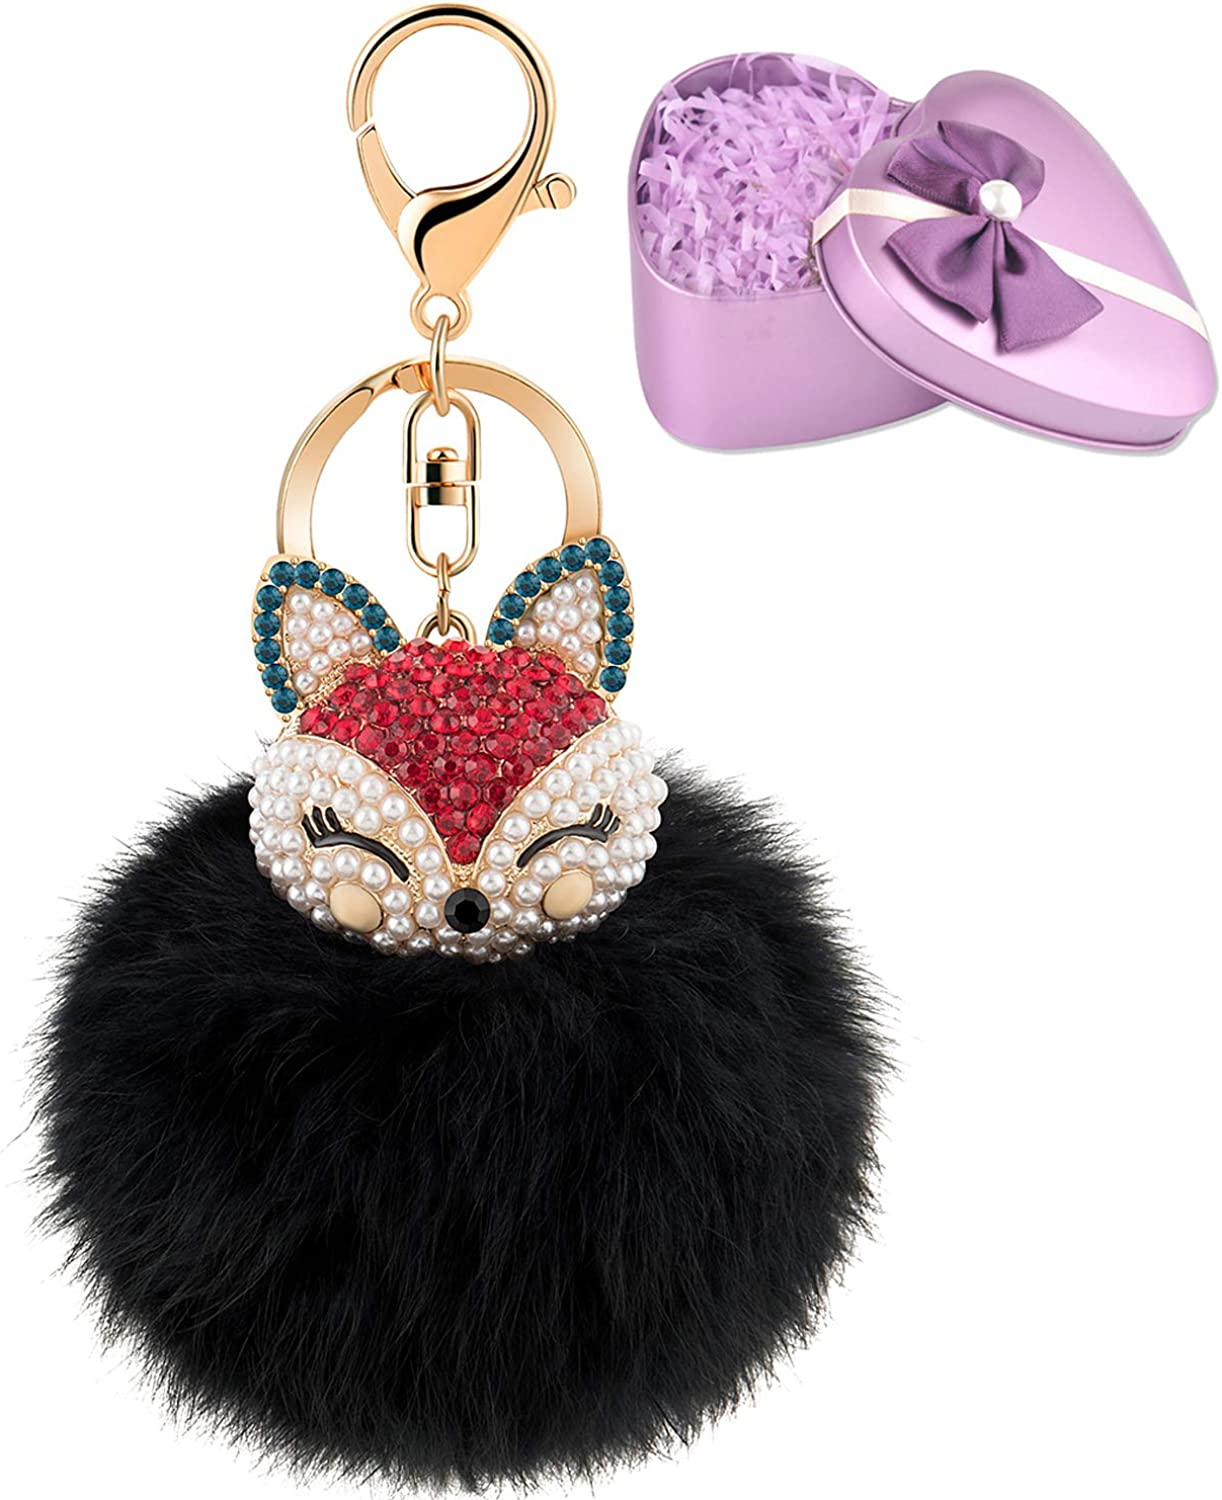 gifts for daughters, Afro Head Resin Keychain with Heart Shape Faux Fox Fur Pom Pom luggage tag gifts for her